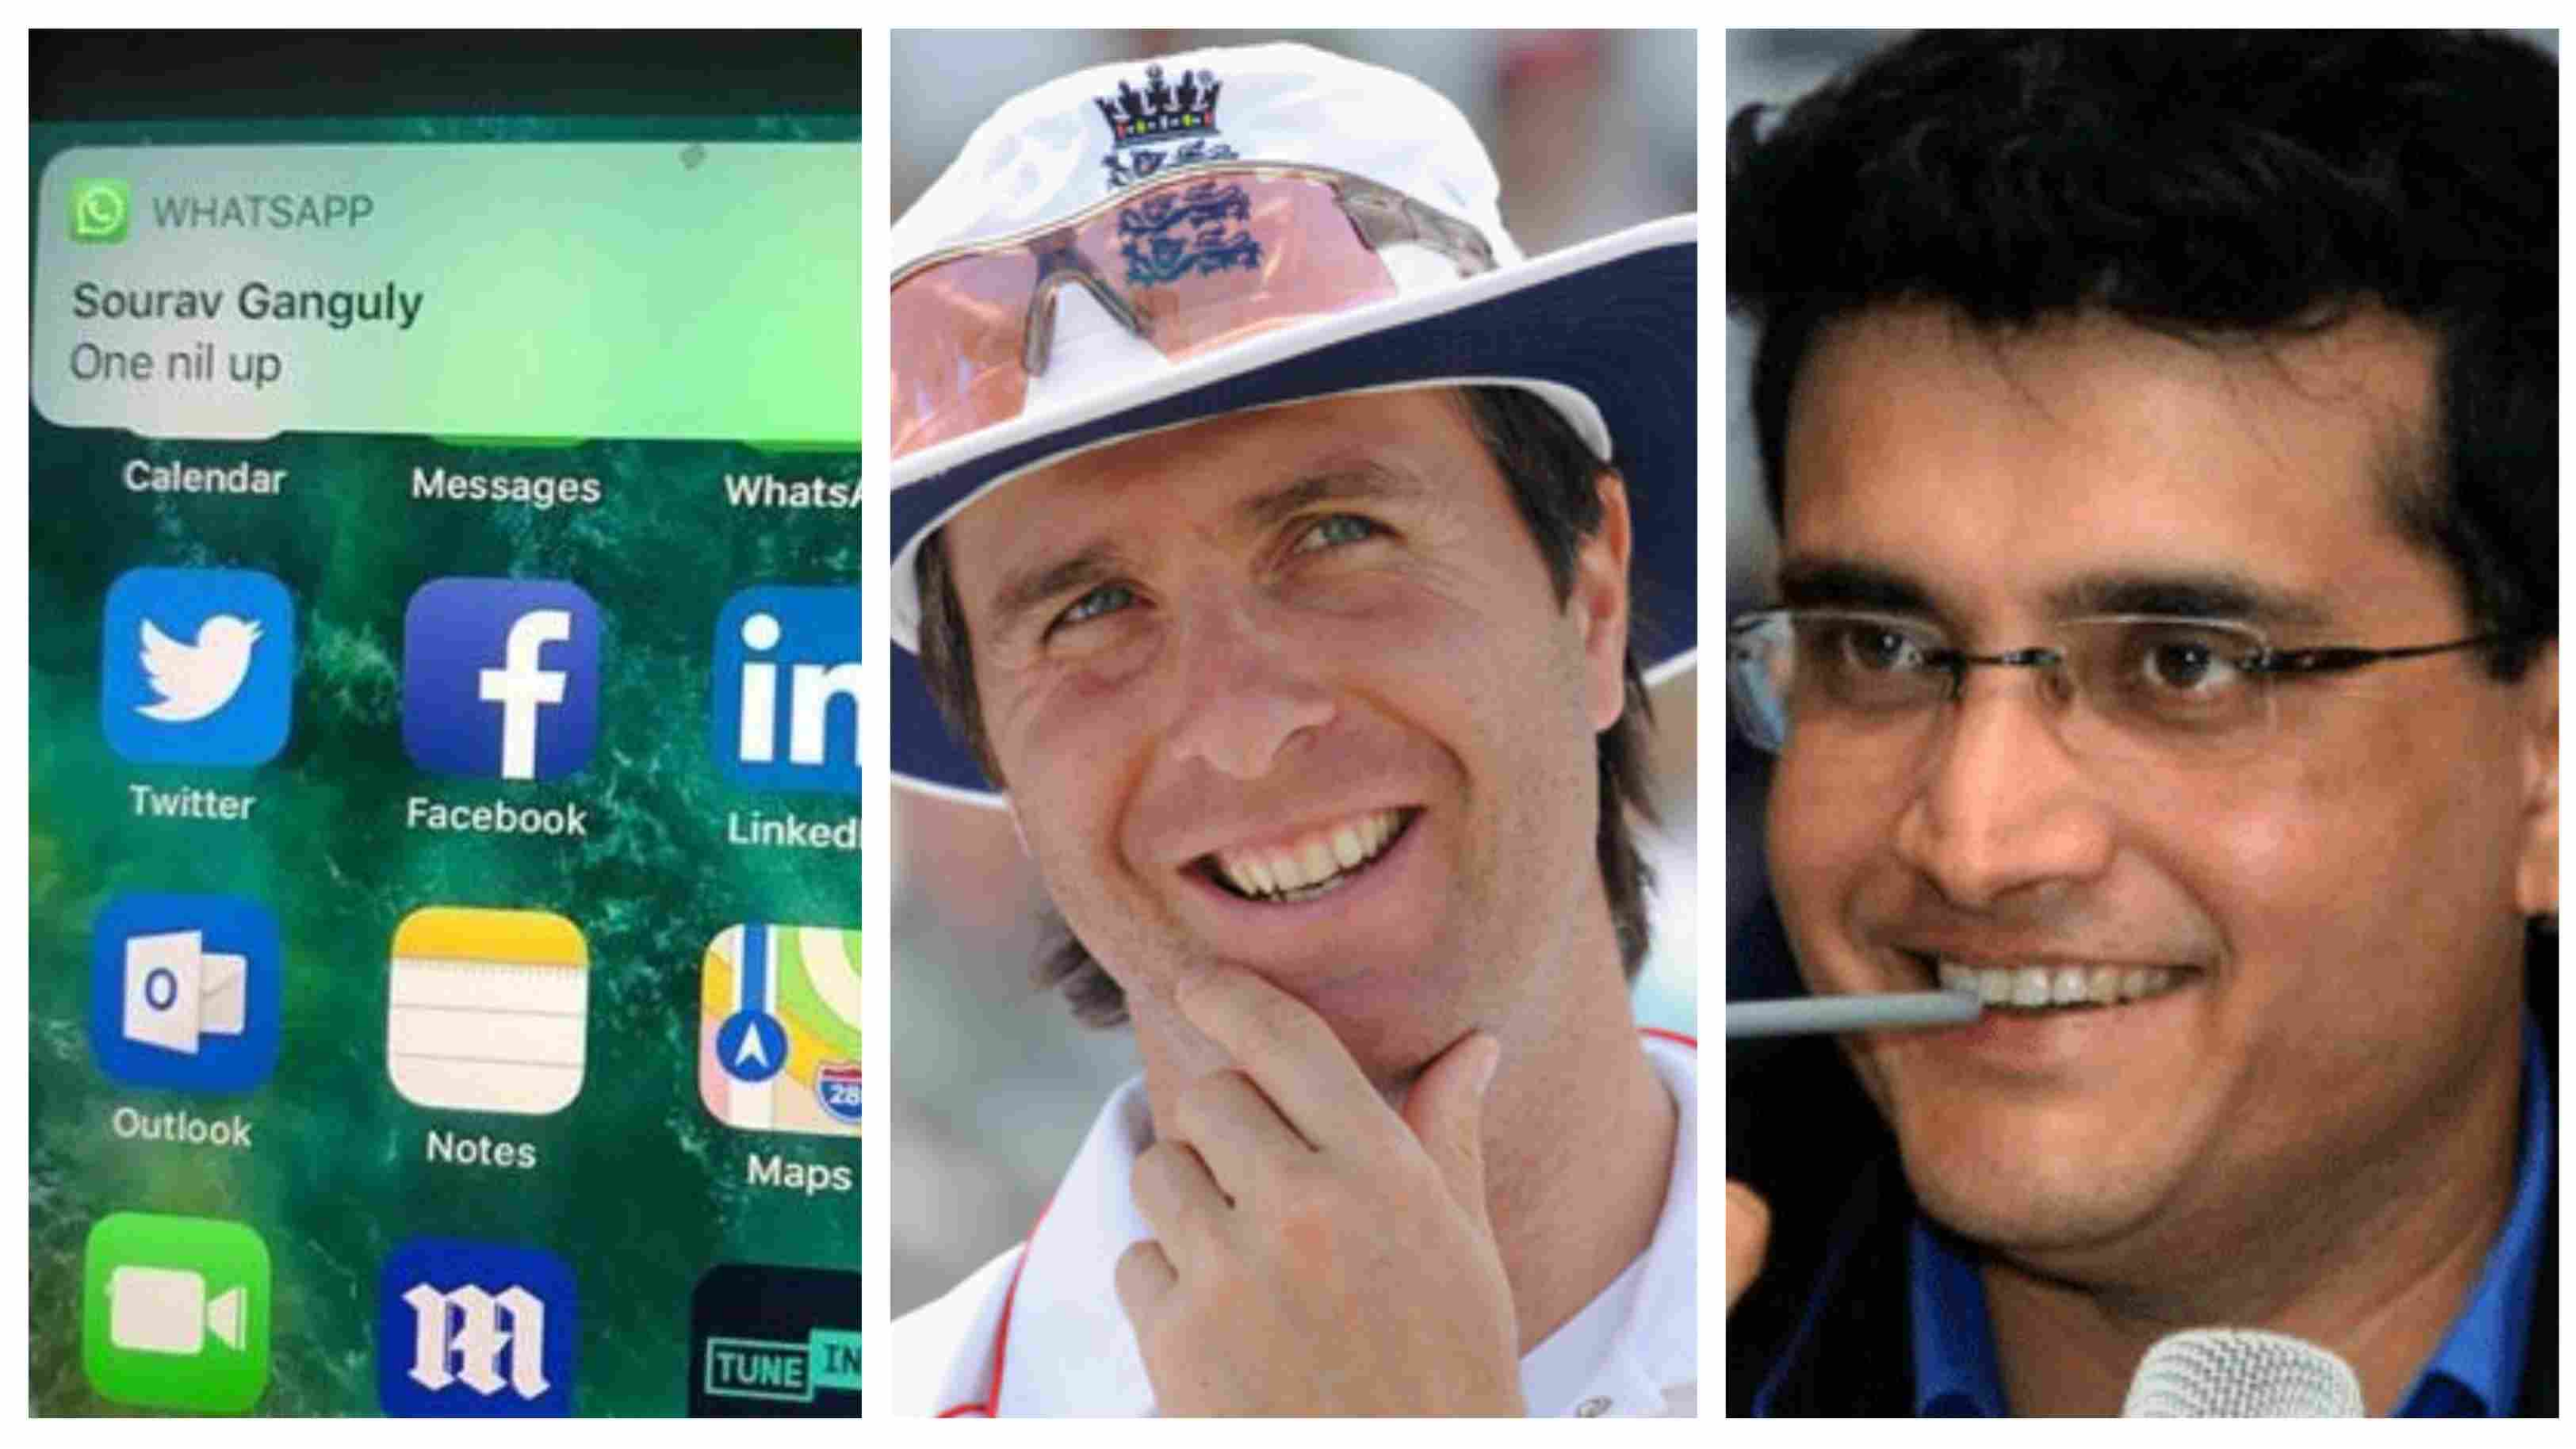 Michael Vaughan shares the screenshot of WhatsApp exchange with Sourav Ganguly